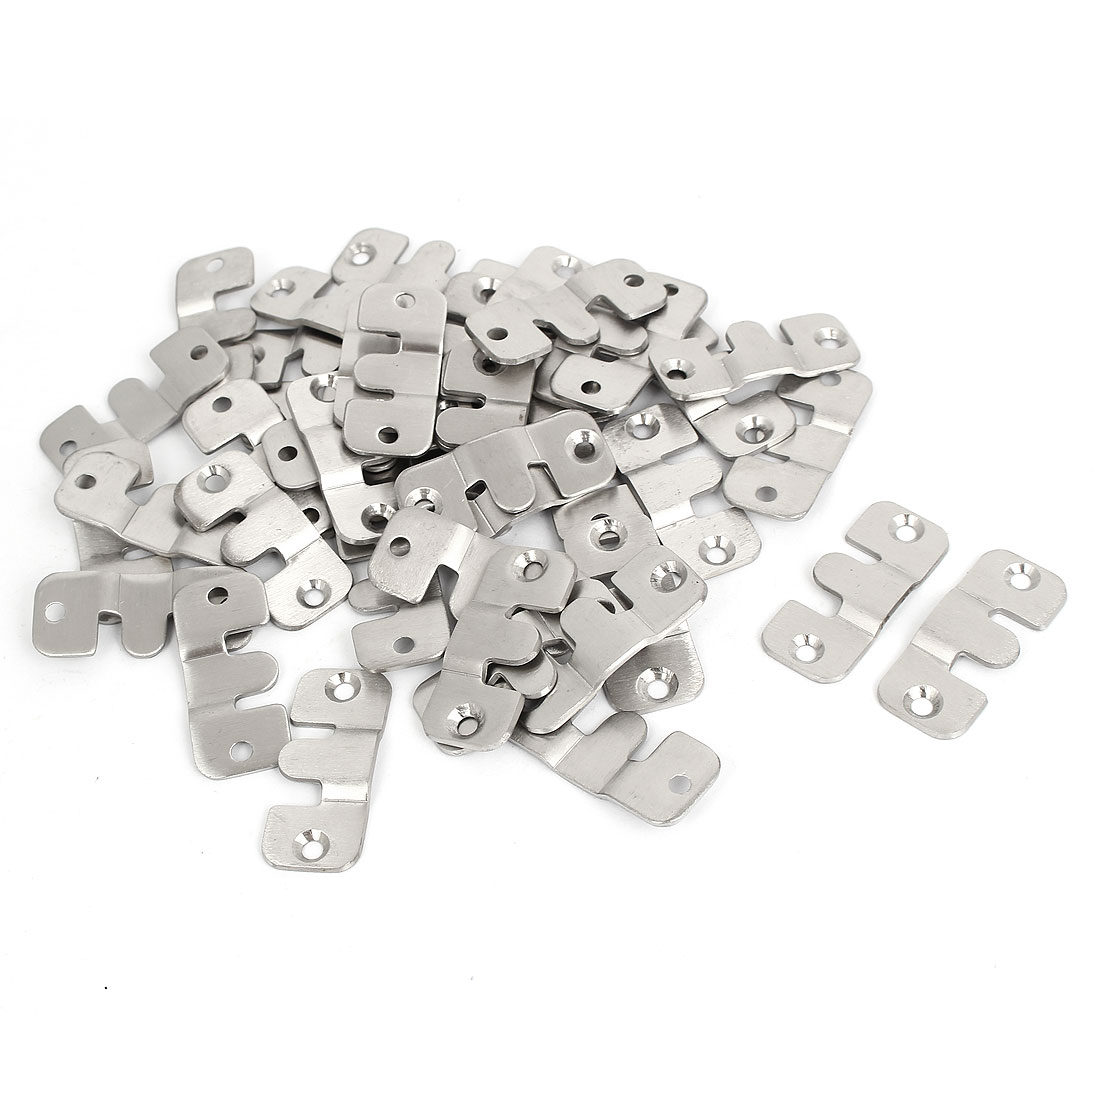 Unique Bargains Stainless Steel Universal Sectional Photo Frame Sofa Connector Bracket 40pcs